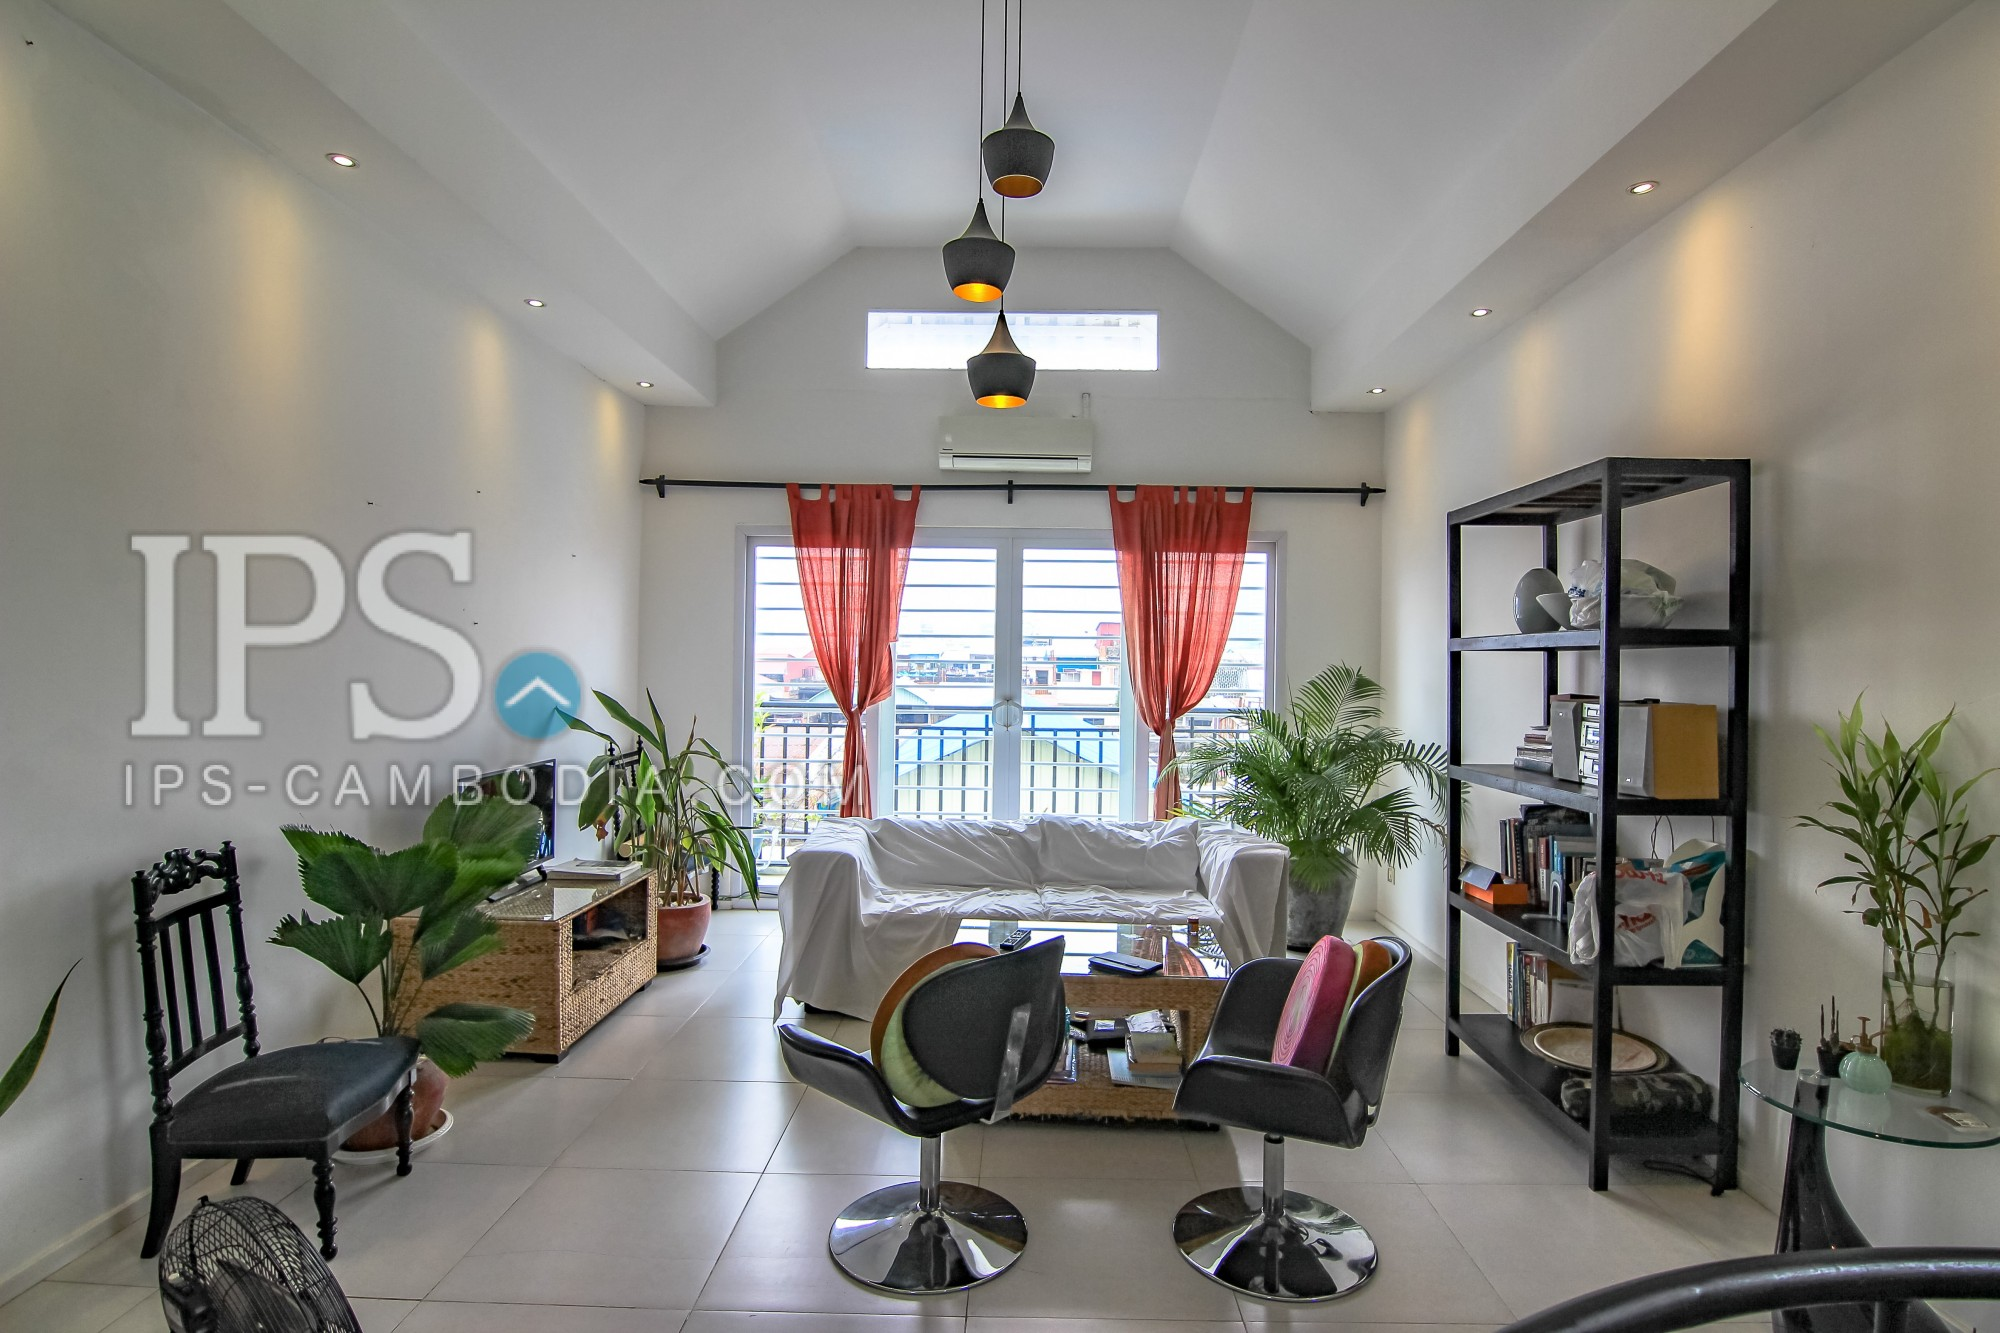 2 Bedroom Duplex Apartment for Sale - 7 Makara